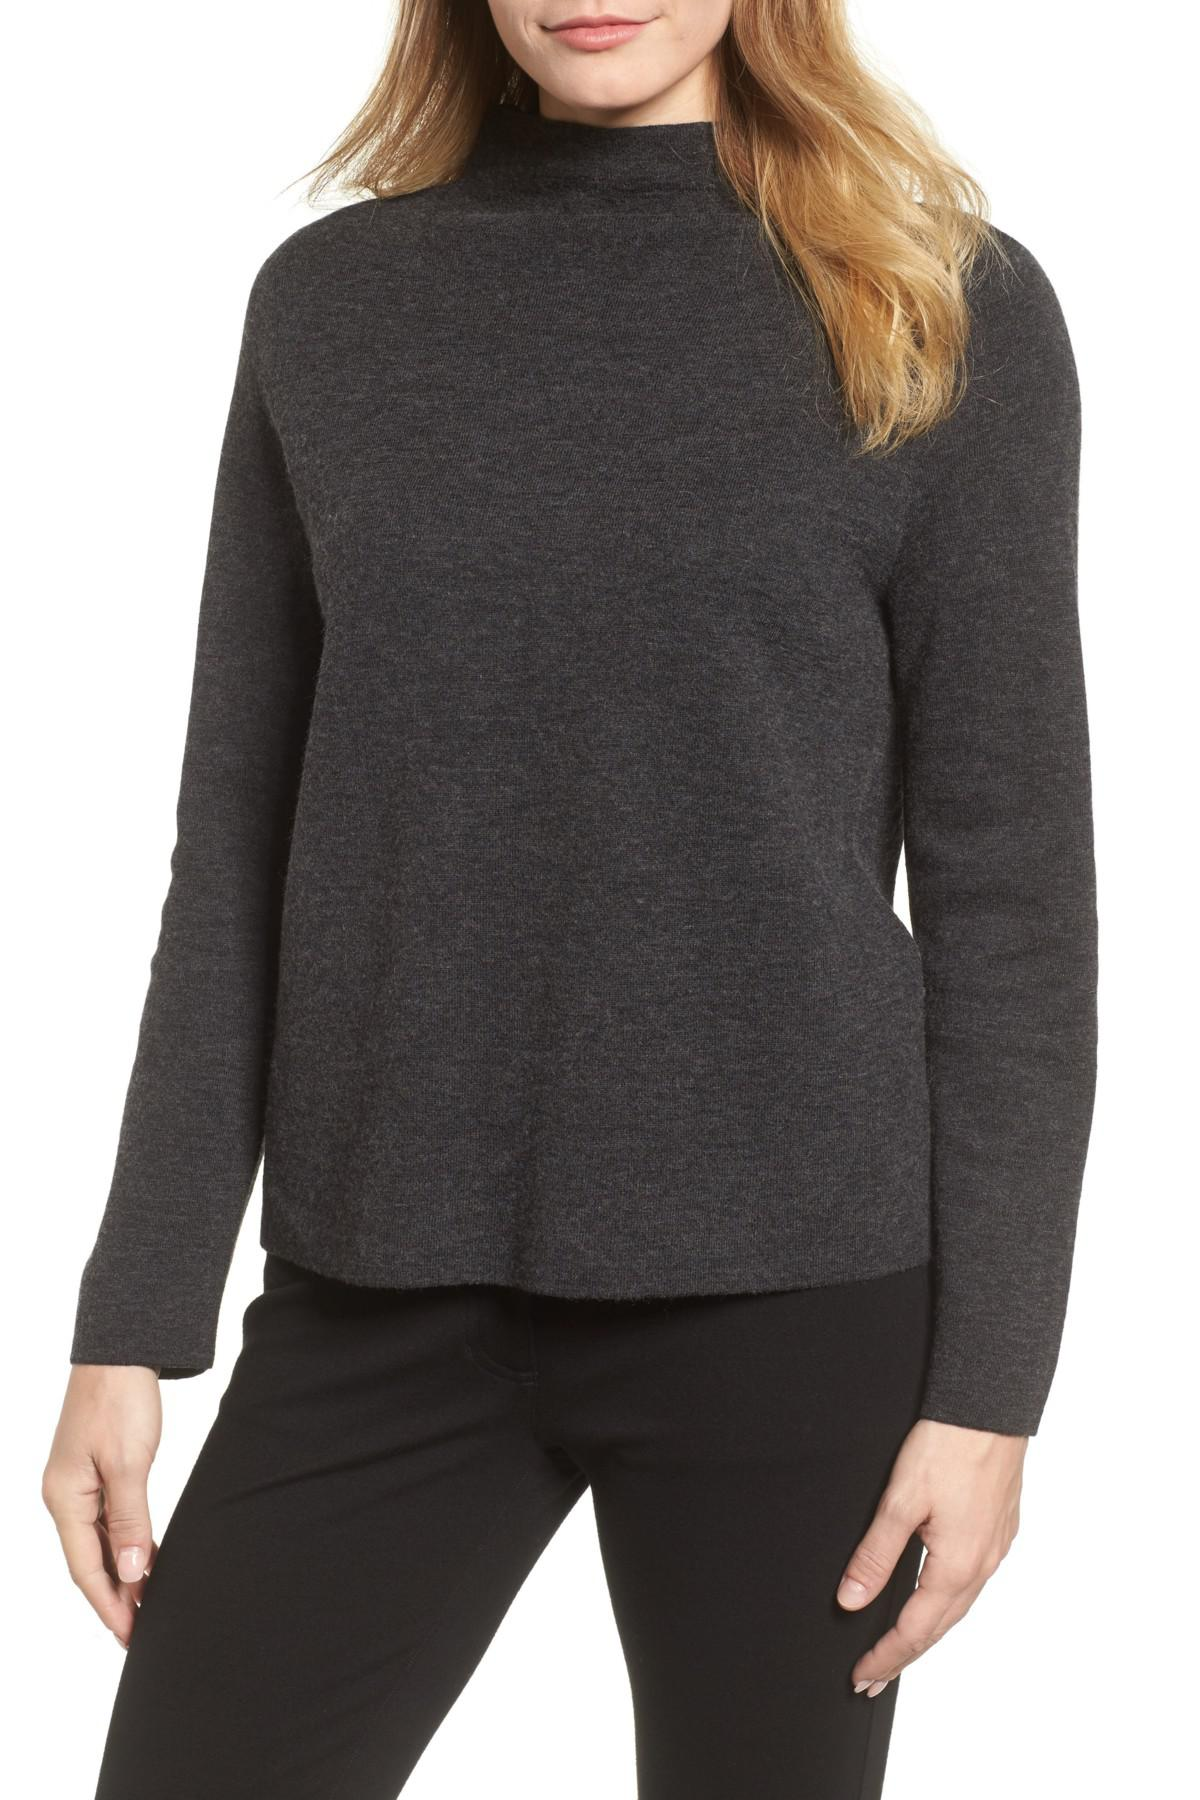 fisher rack neck bateau pinterest drop pin merino eileen nordstrom fall shoulder seamed wool splurge sweater and item